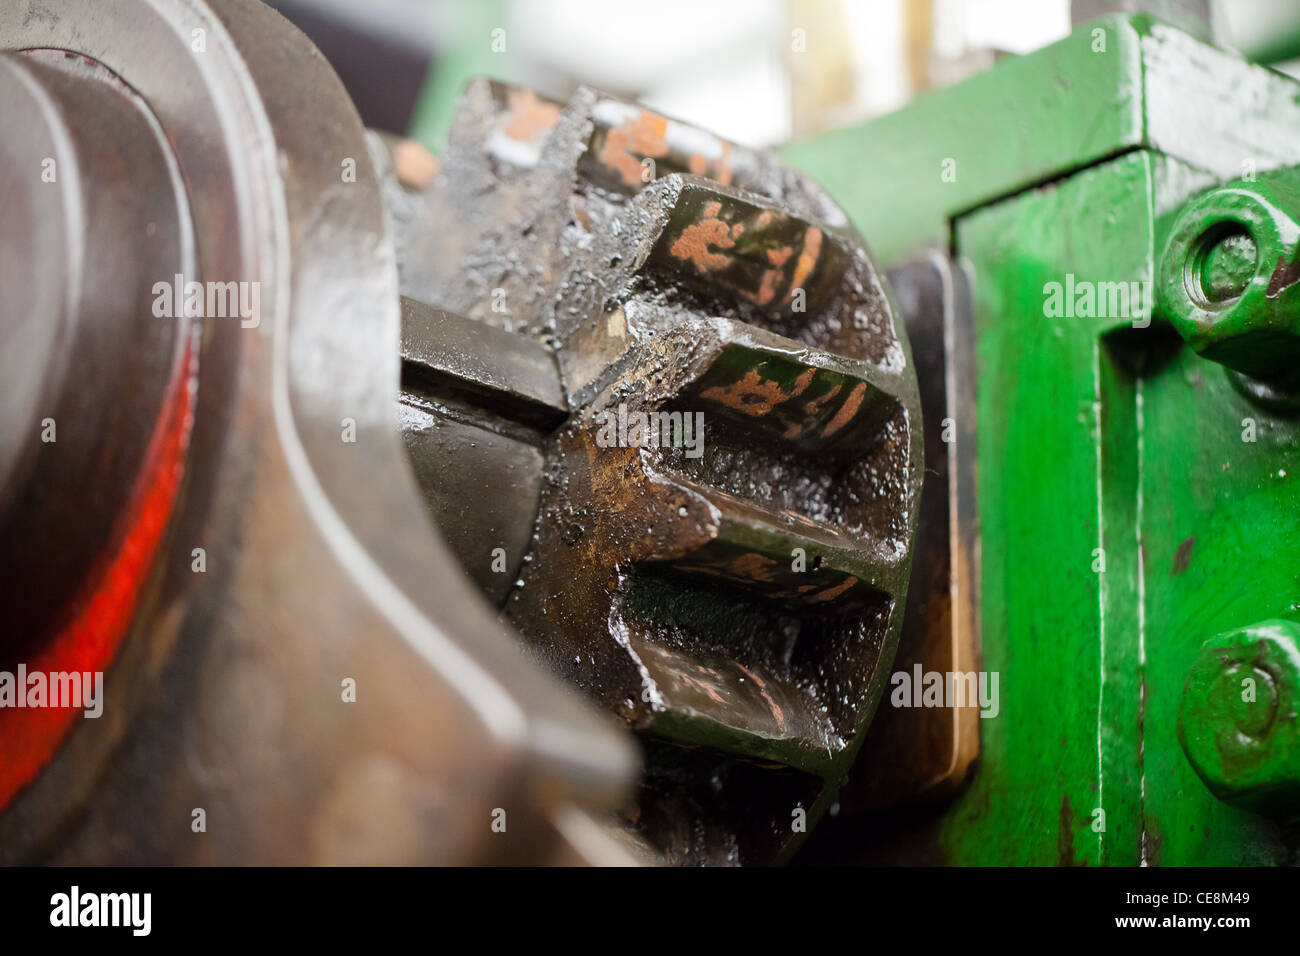 detail of a cog gearing on an old steam engine. - Stock Image